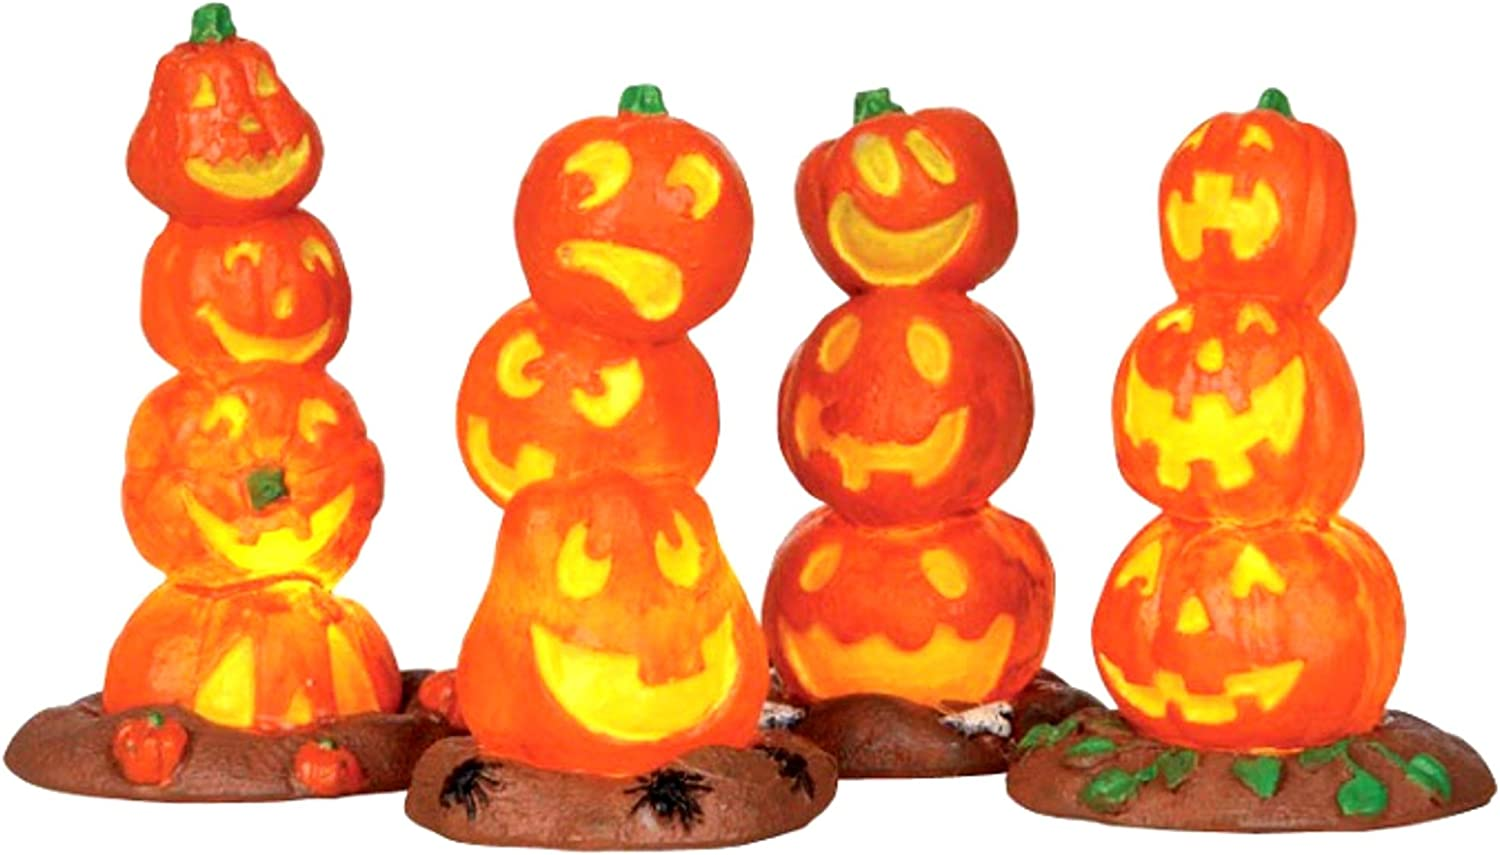 Lemax Spooky Town Halloween Light Up Stack #3 Popular brand in the world 4 Pack of Max 78% OFF Pumpkin